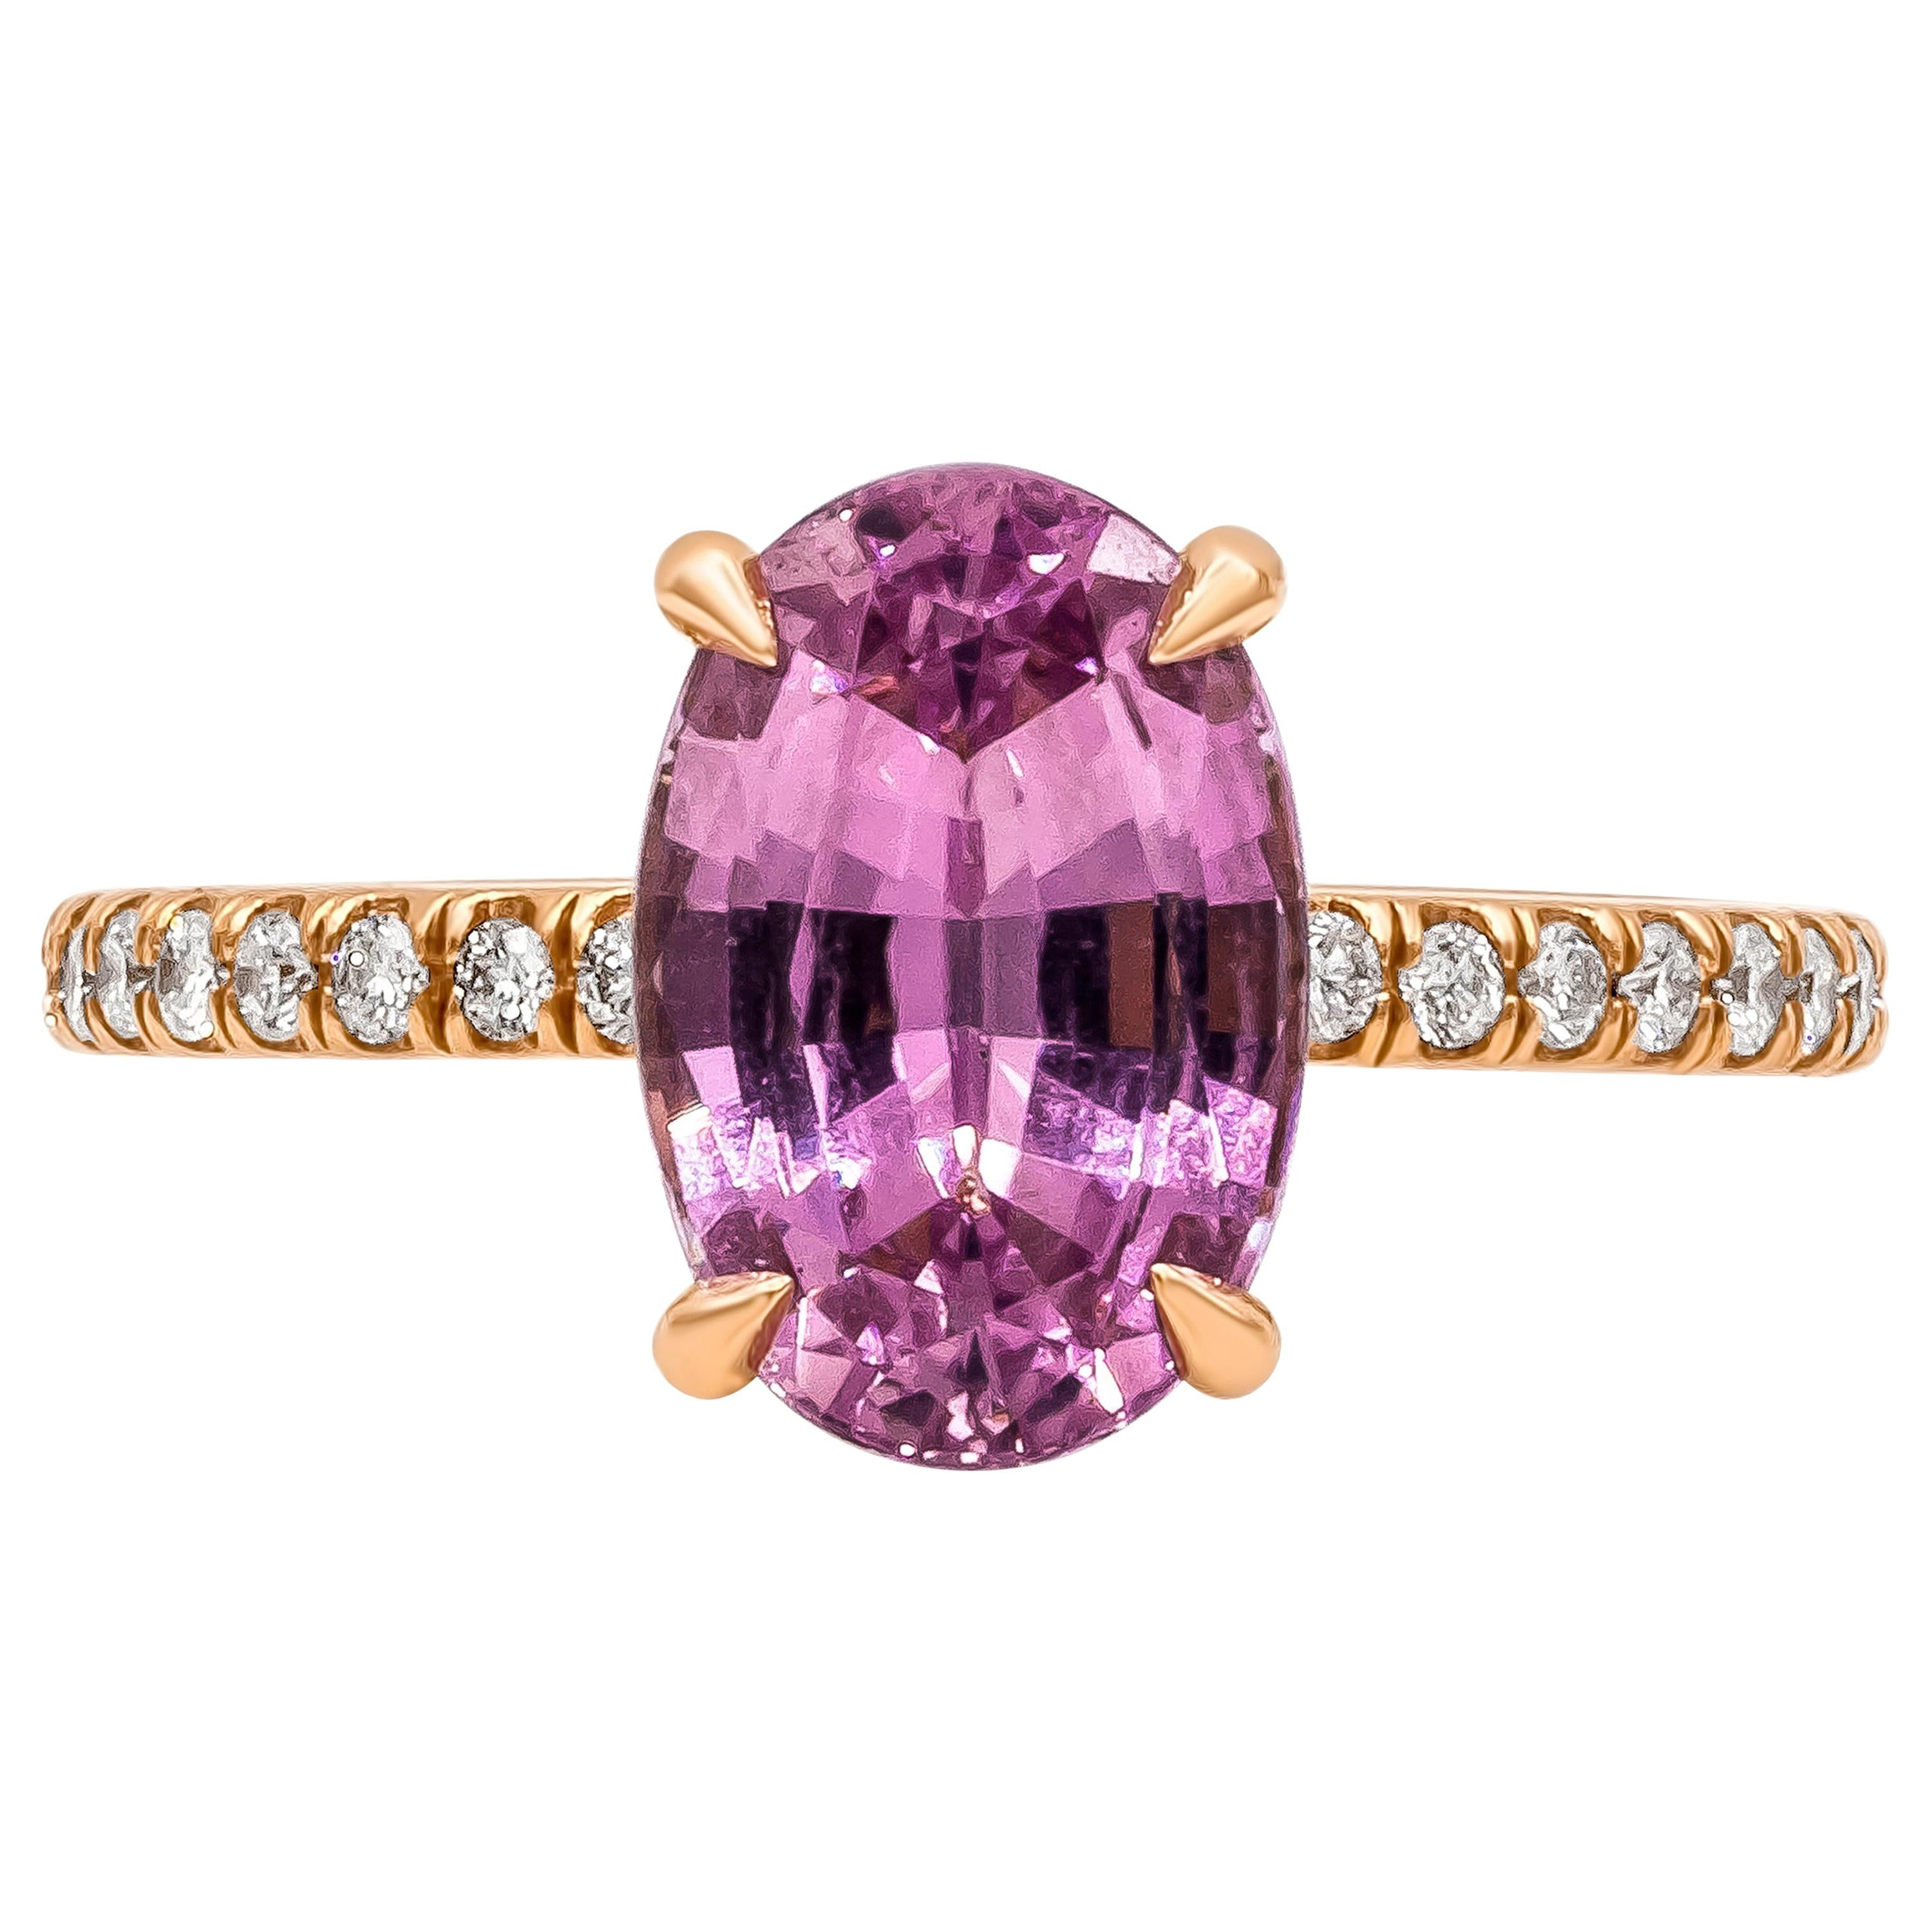 GIA Certified 3.38 Carat No Heat Pink Sapphire and Diamond Engagement Ring